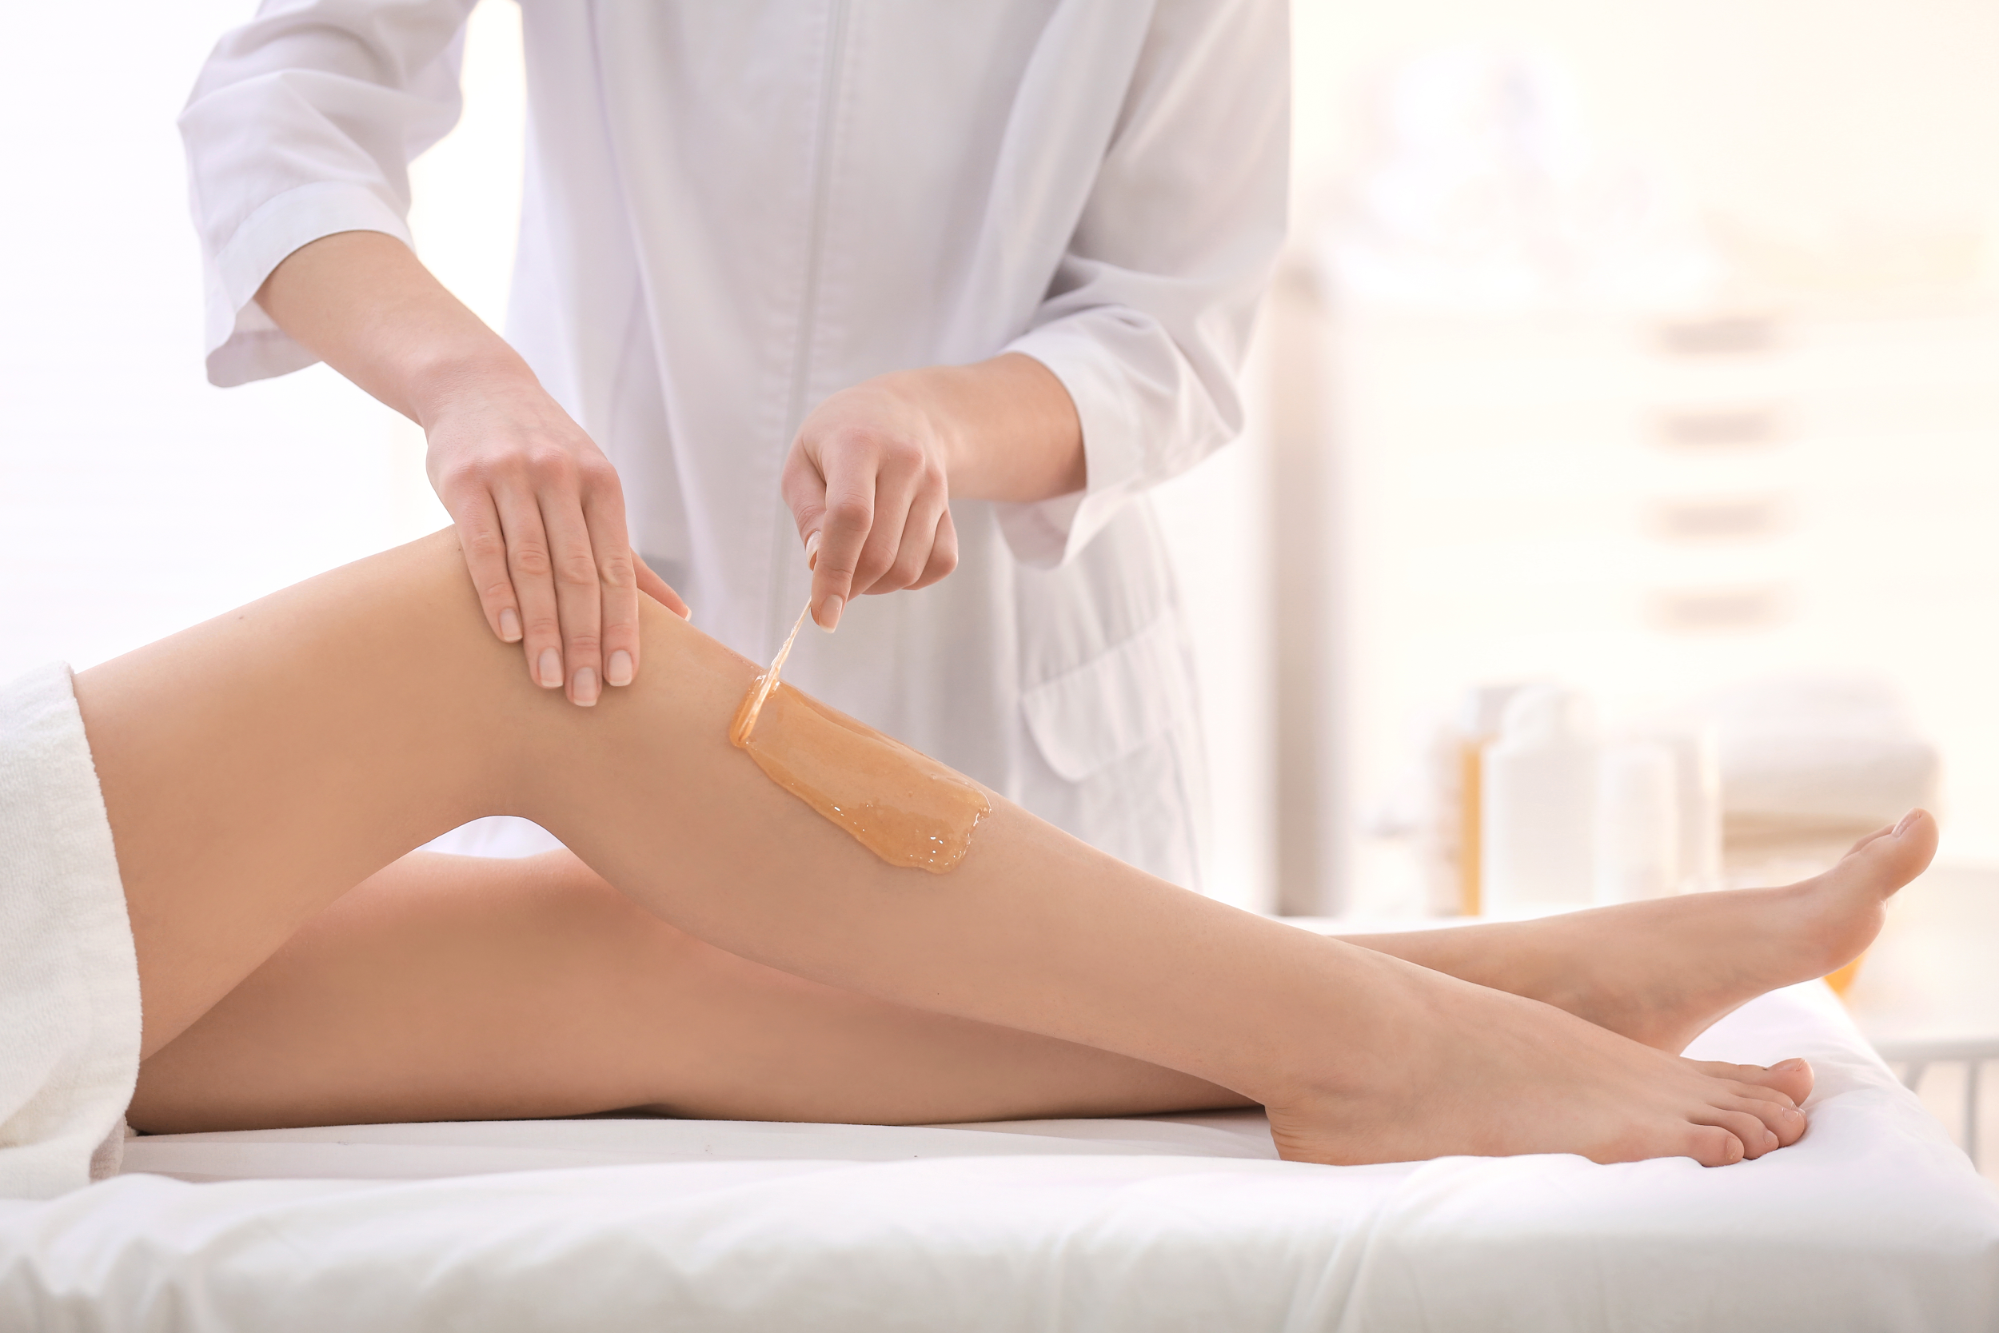 Your Complete Guide To Smooth Body Waxing At Home!